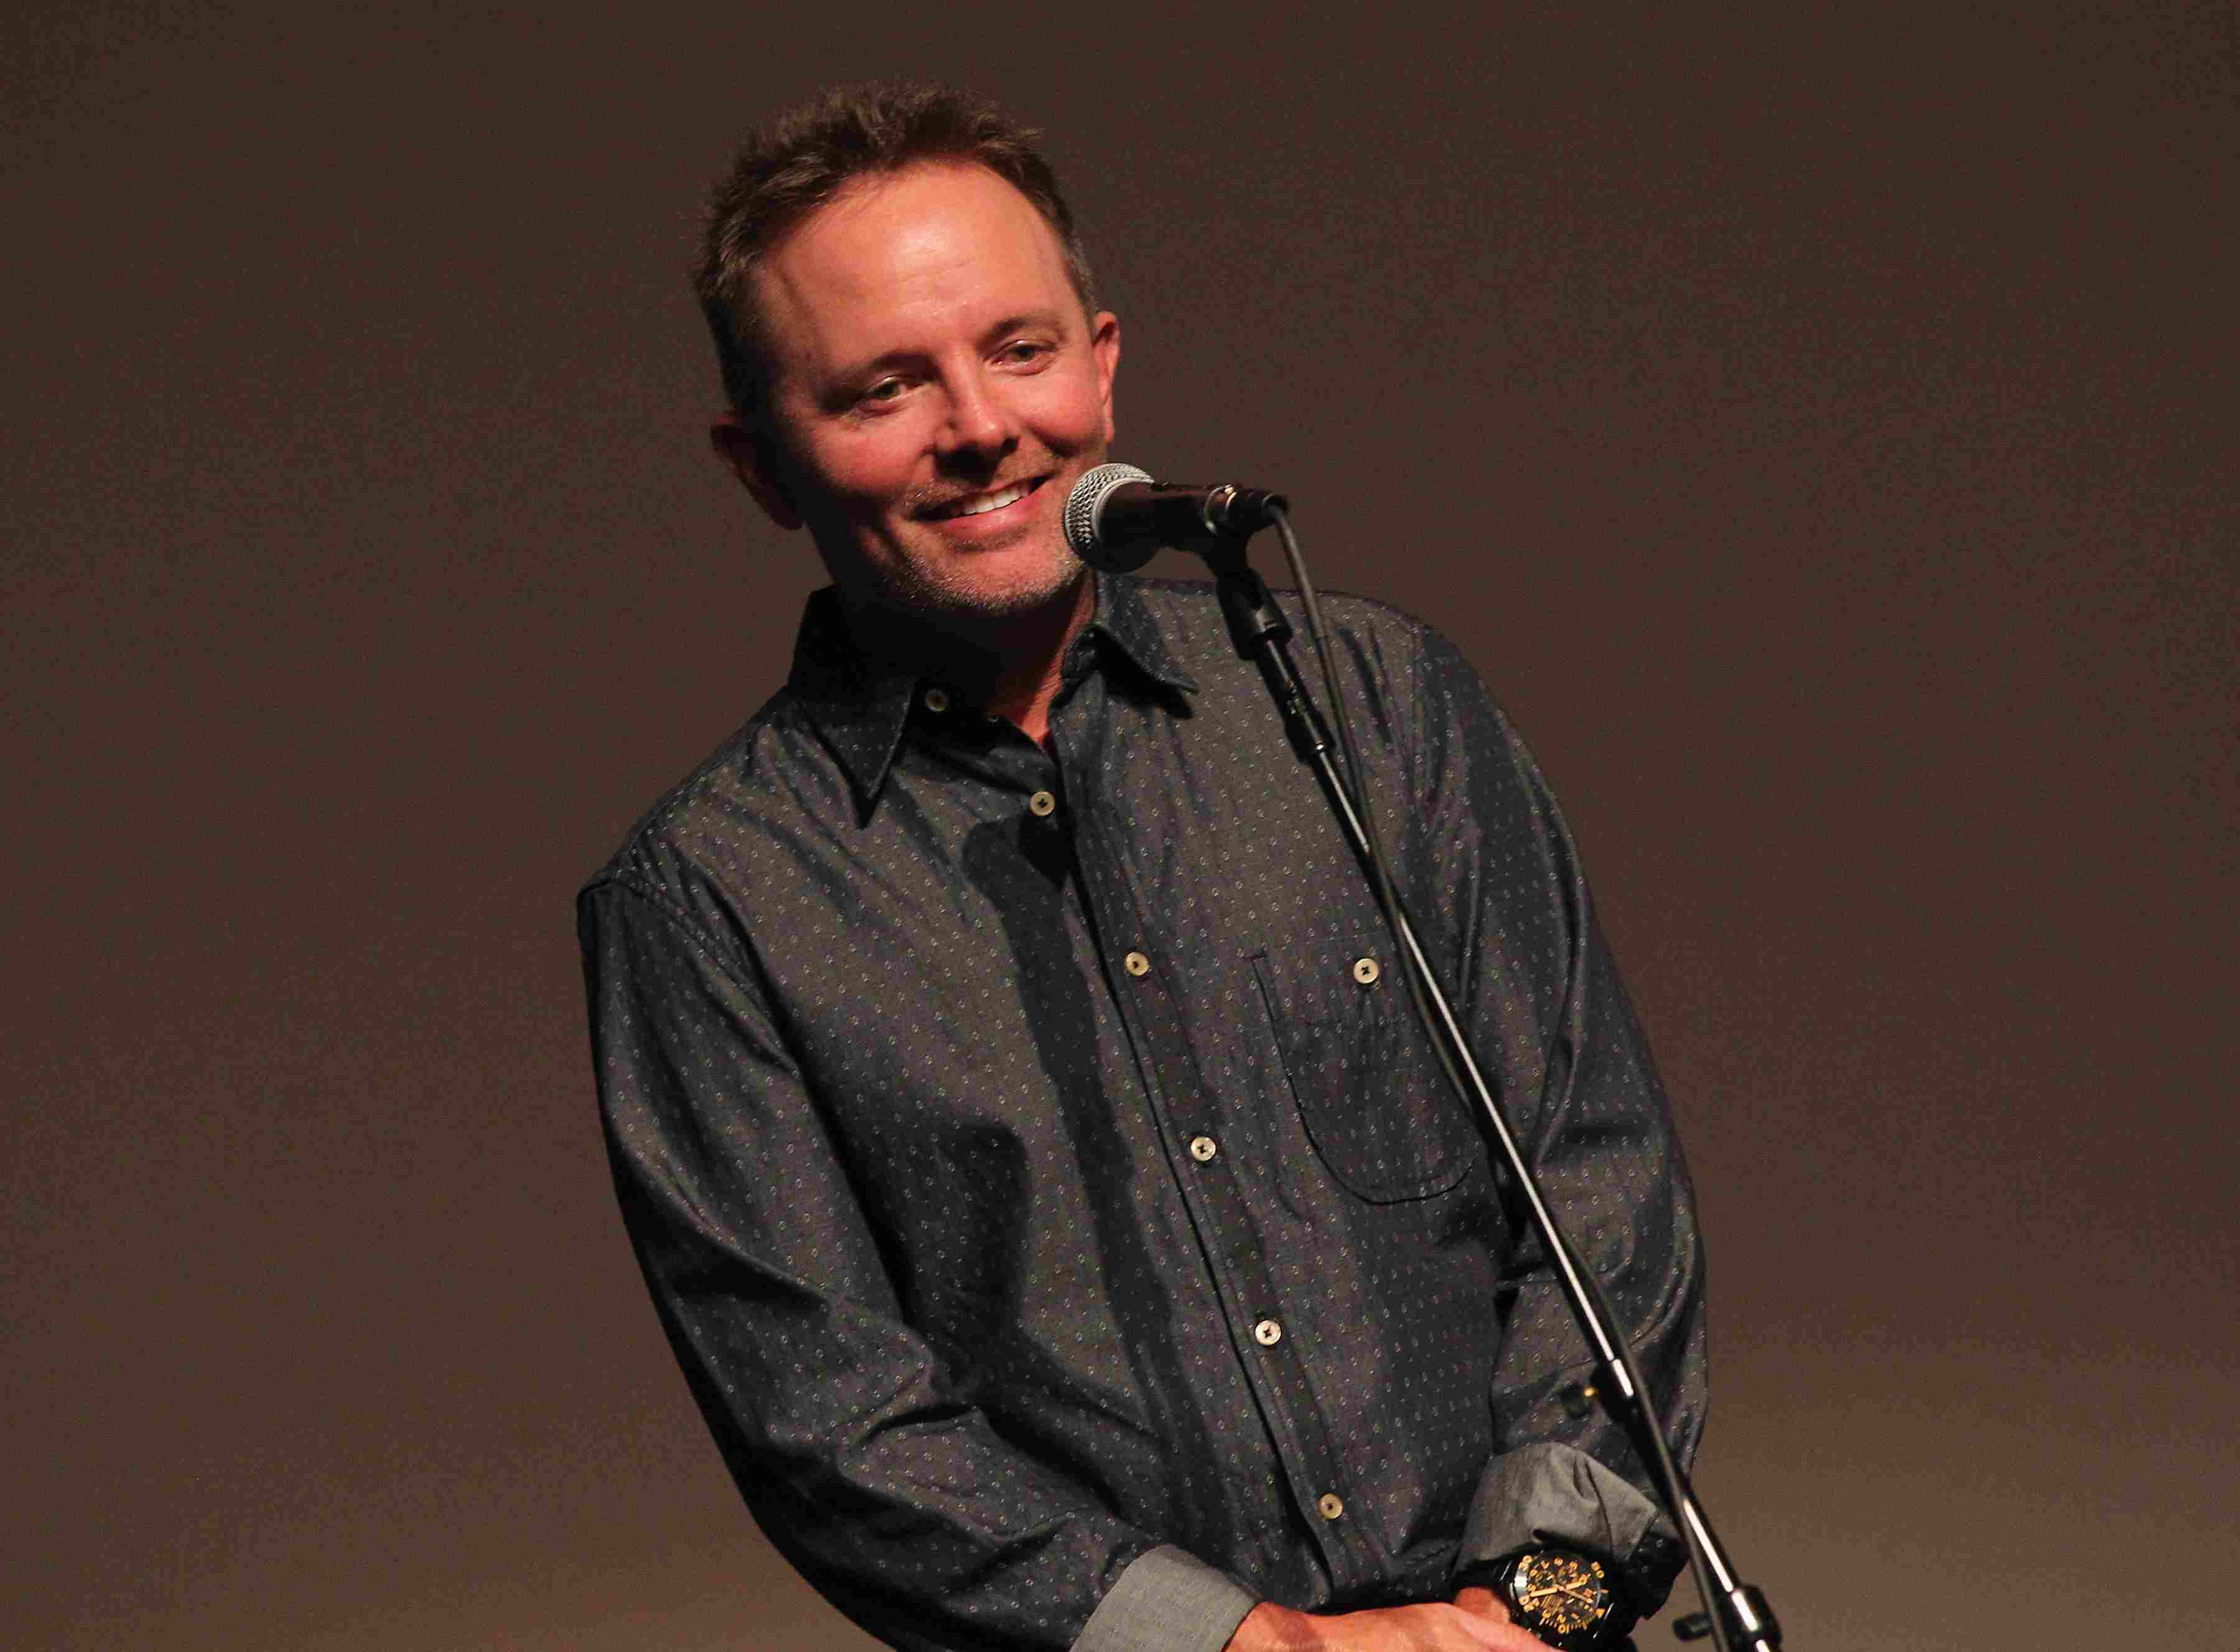 Chris Tomlin at 4th Annual KLOVE Fan Awards At The Grand Ole Opry House - Press Room & Backstage